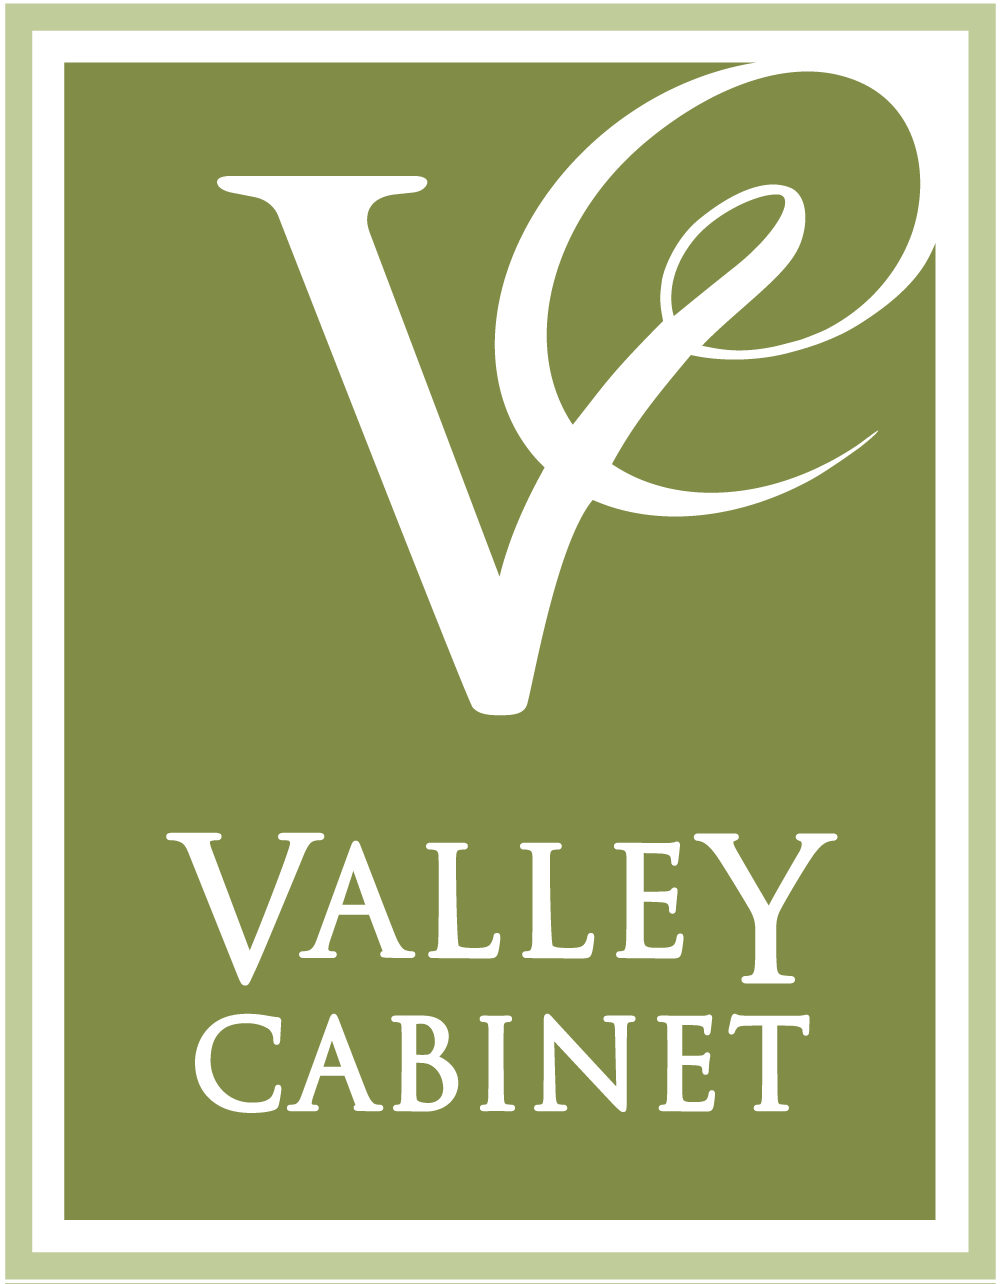 Valley Cabinet logo